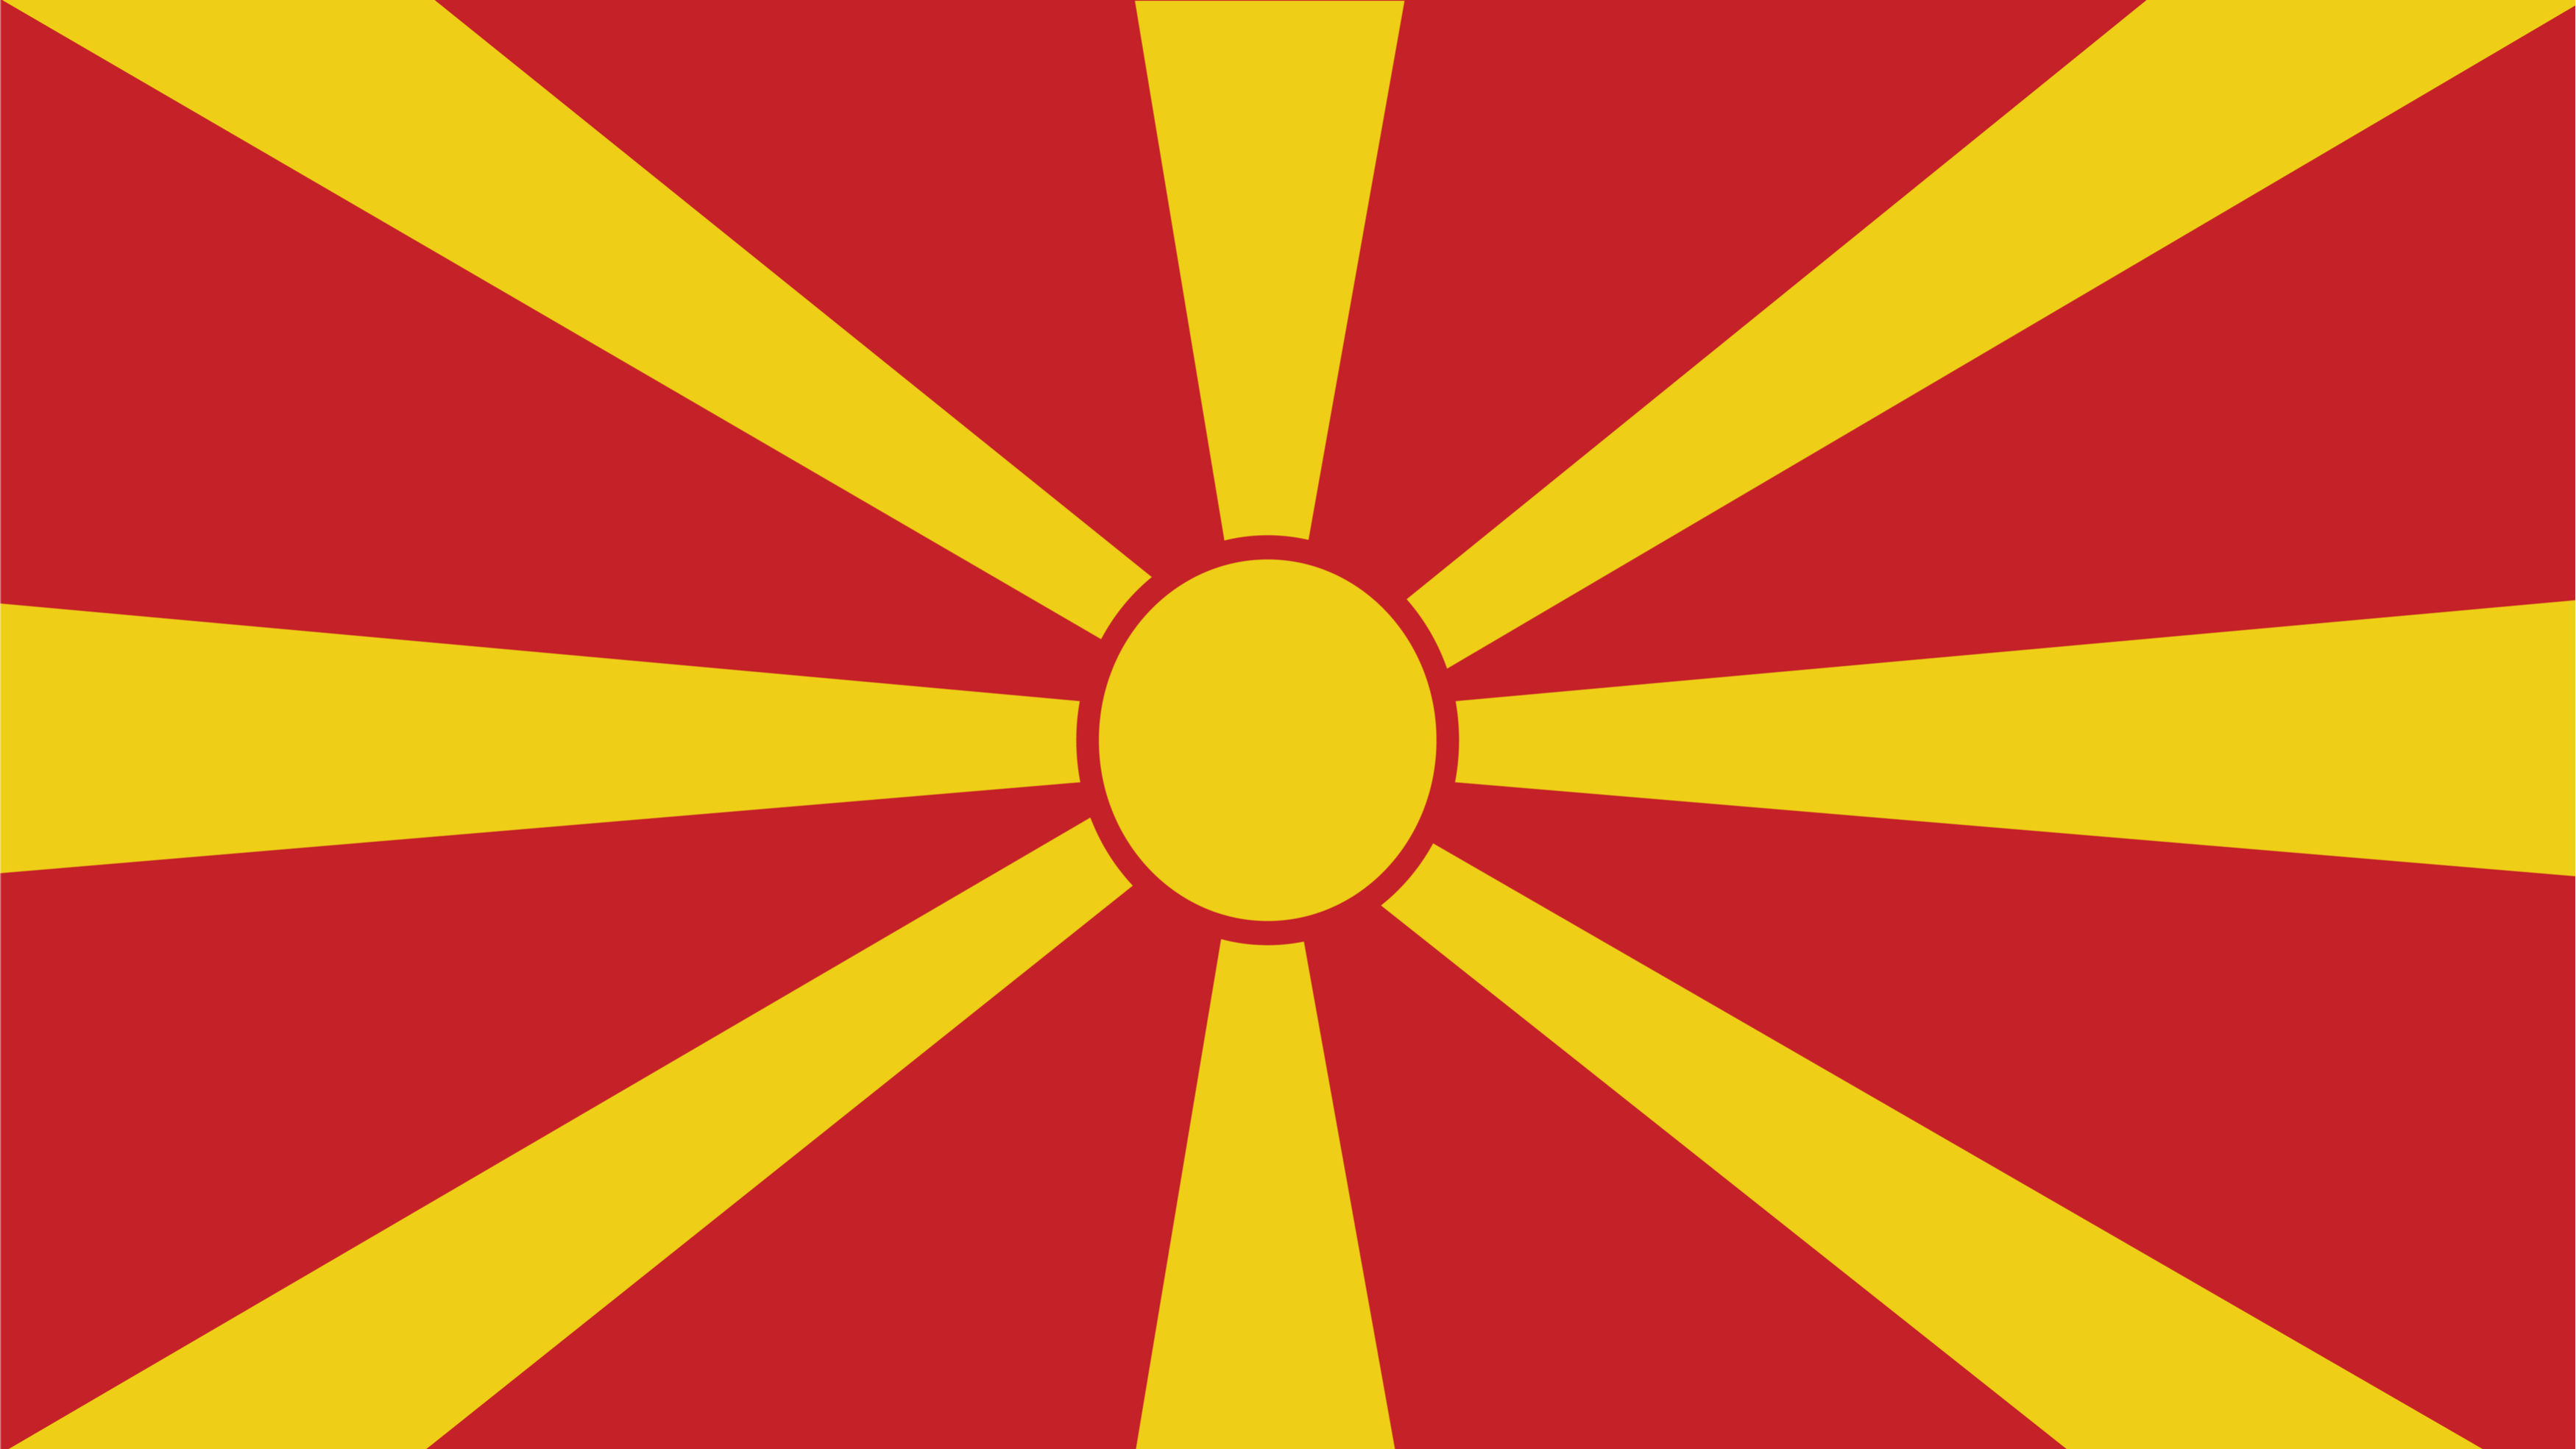 The flag of Macedonia.